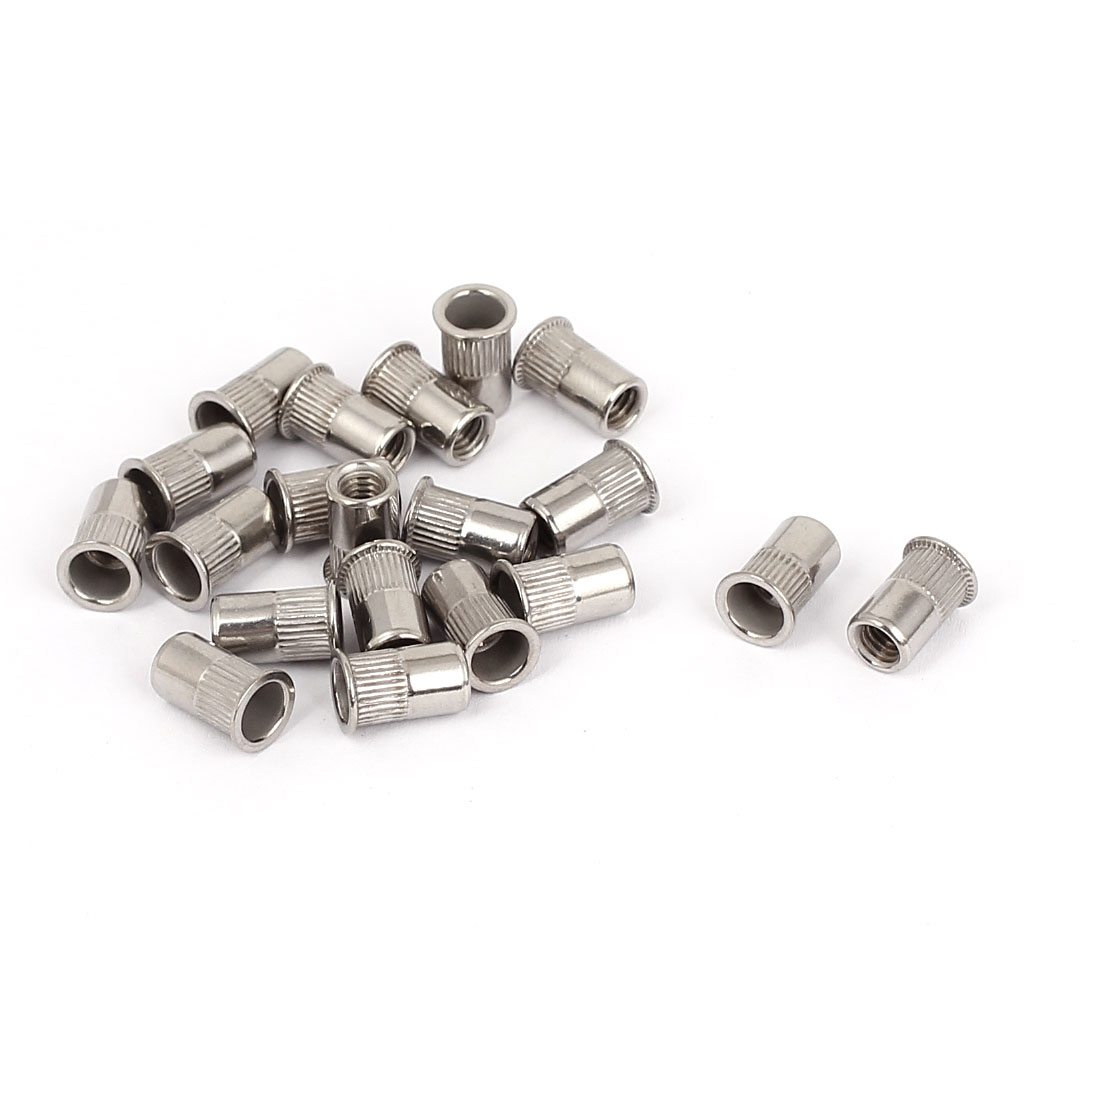 20pcs M4x10mm Stainless Steel Reduced Flat Head Grooved Blind Rivet Nut Nutserts